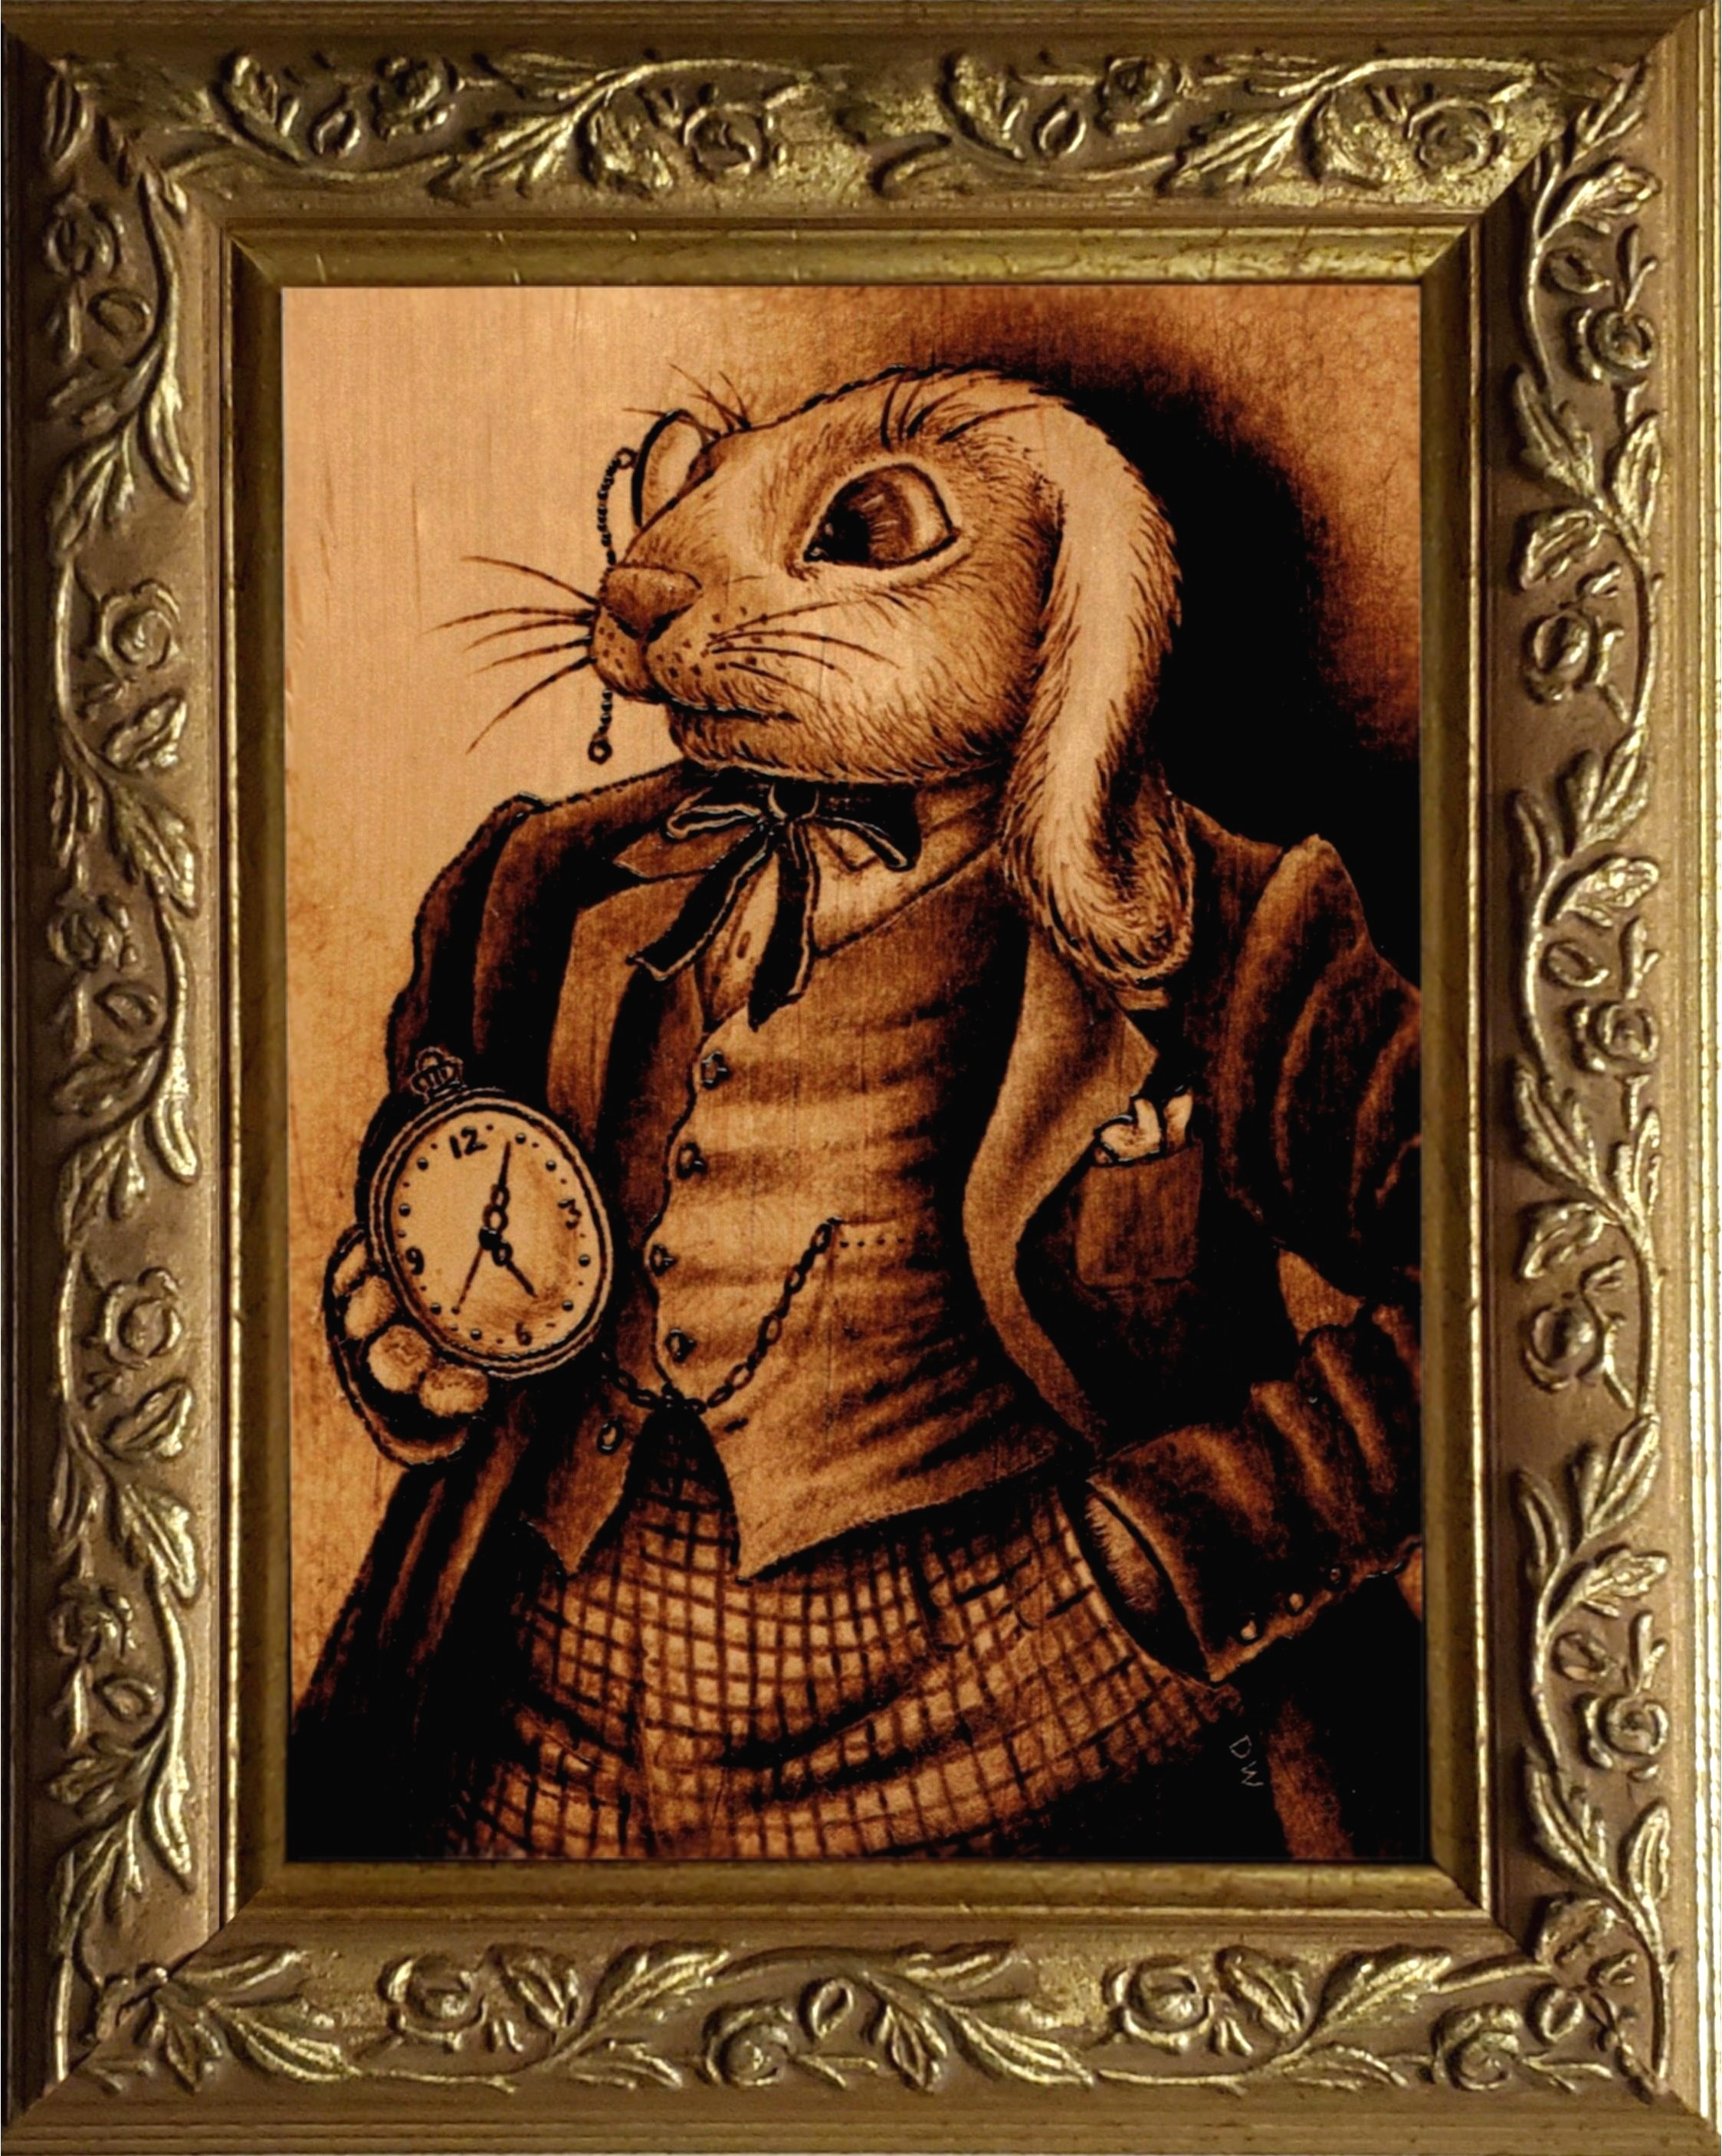 White rabbit holding a watch - pyrography